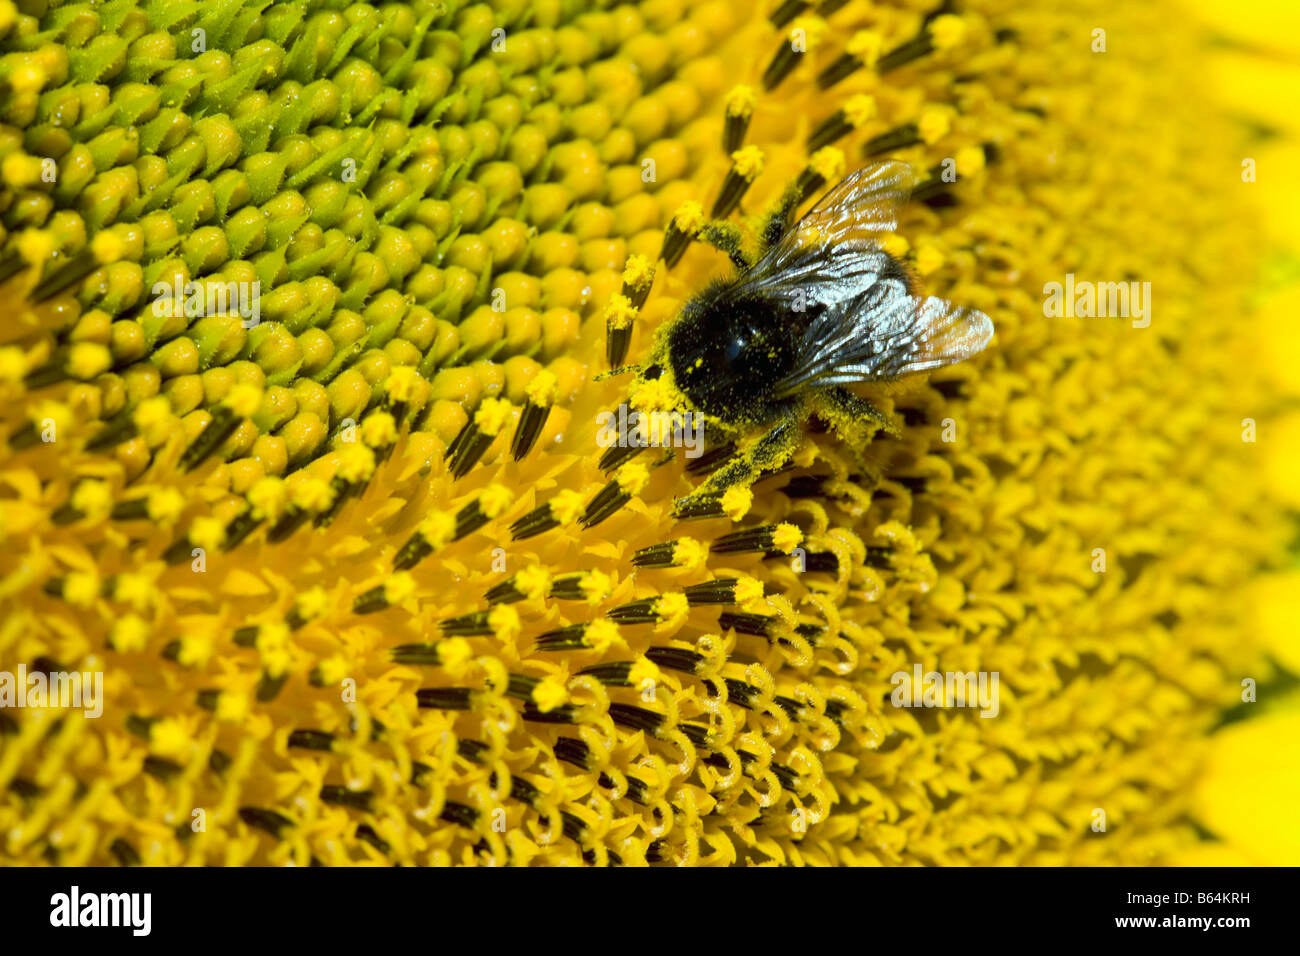 France, near Beaune, Burgundy, Detail of sunflower. Humblebee. - Stock Image